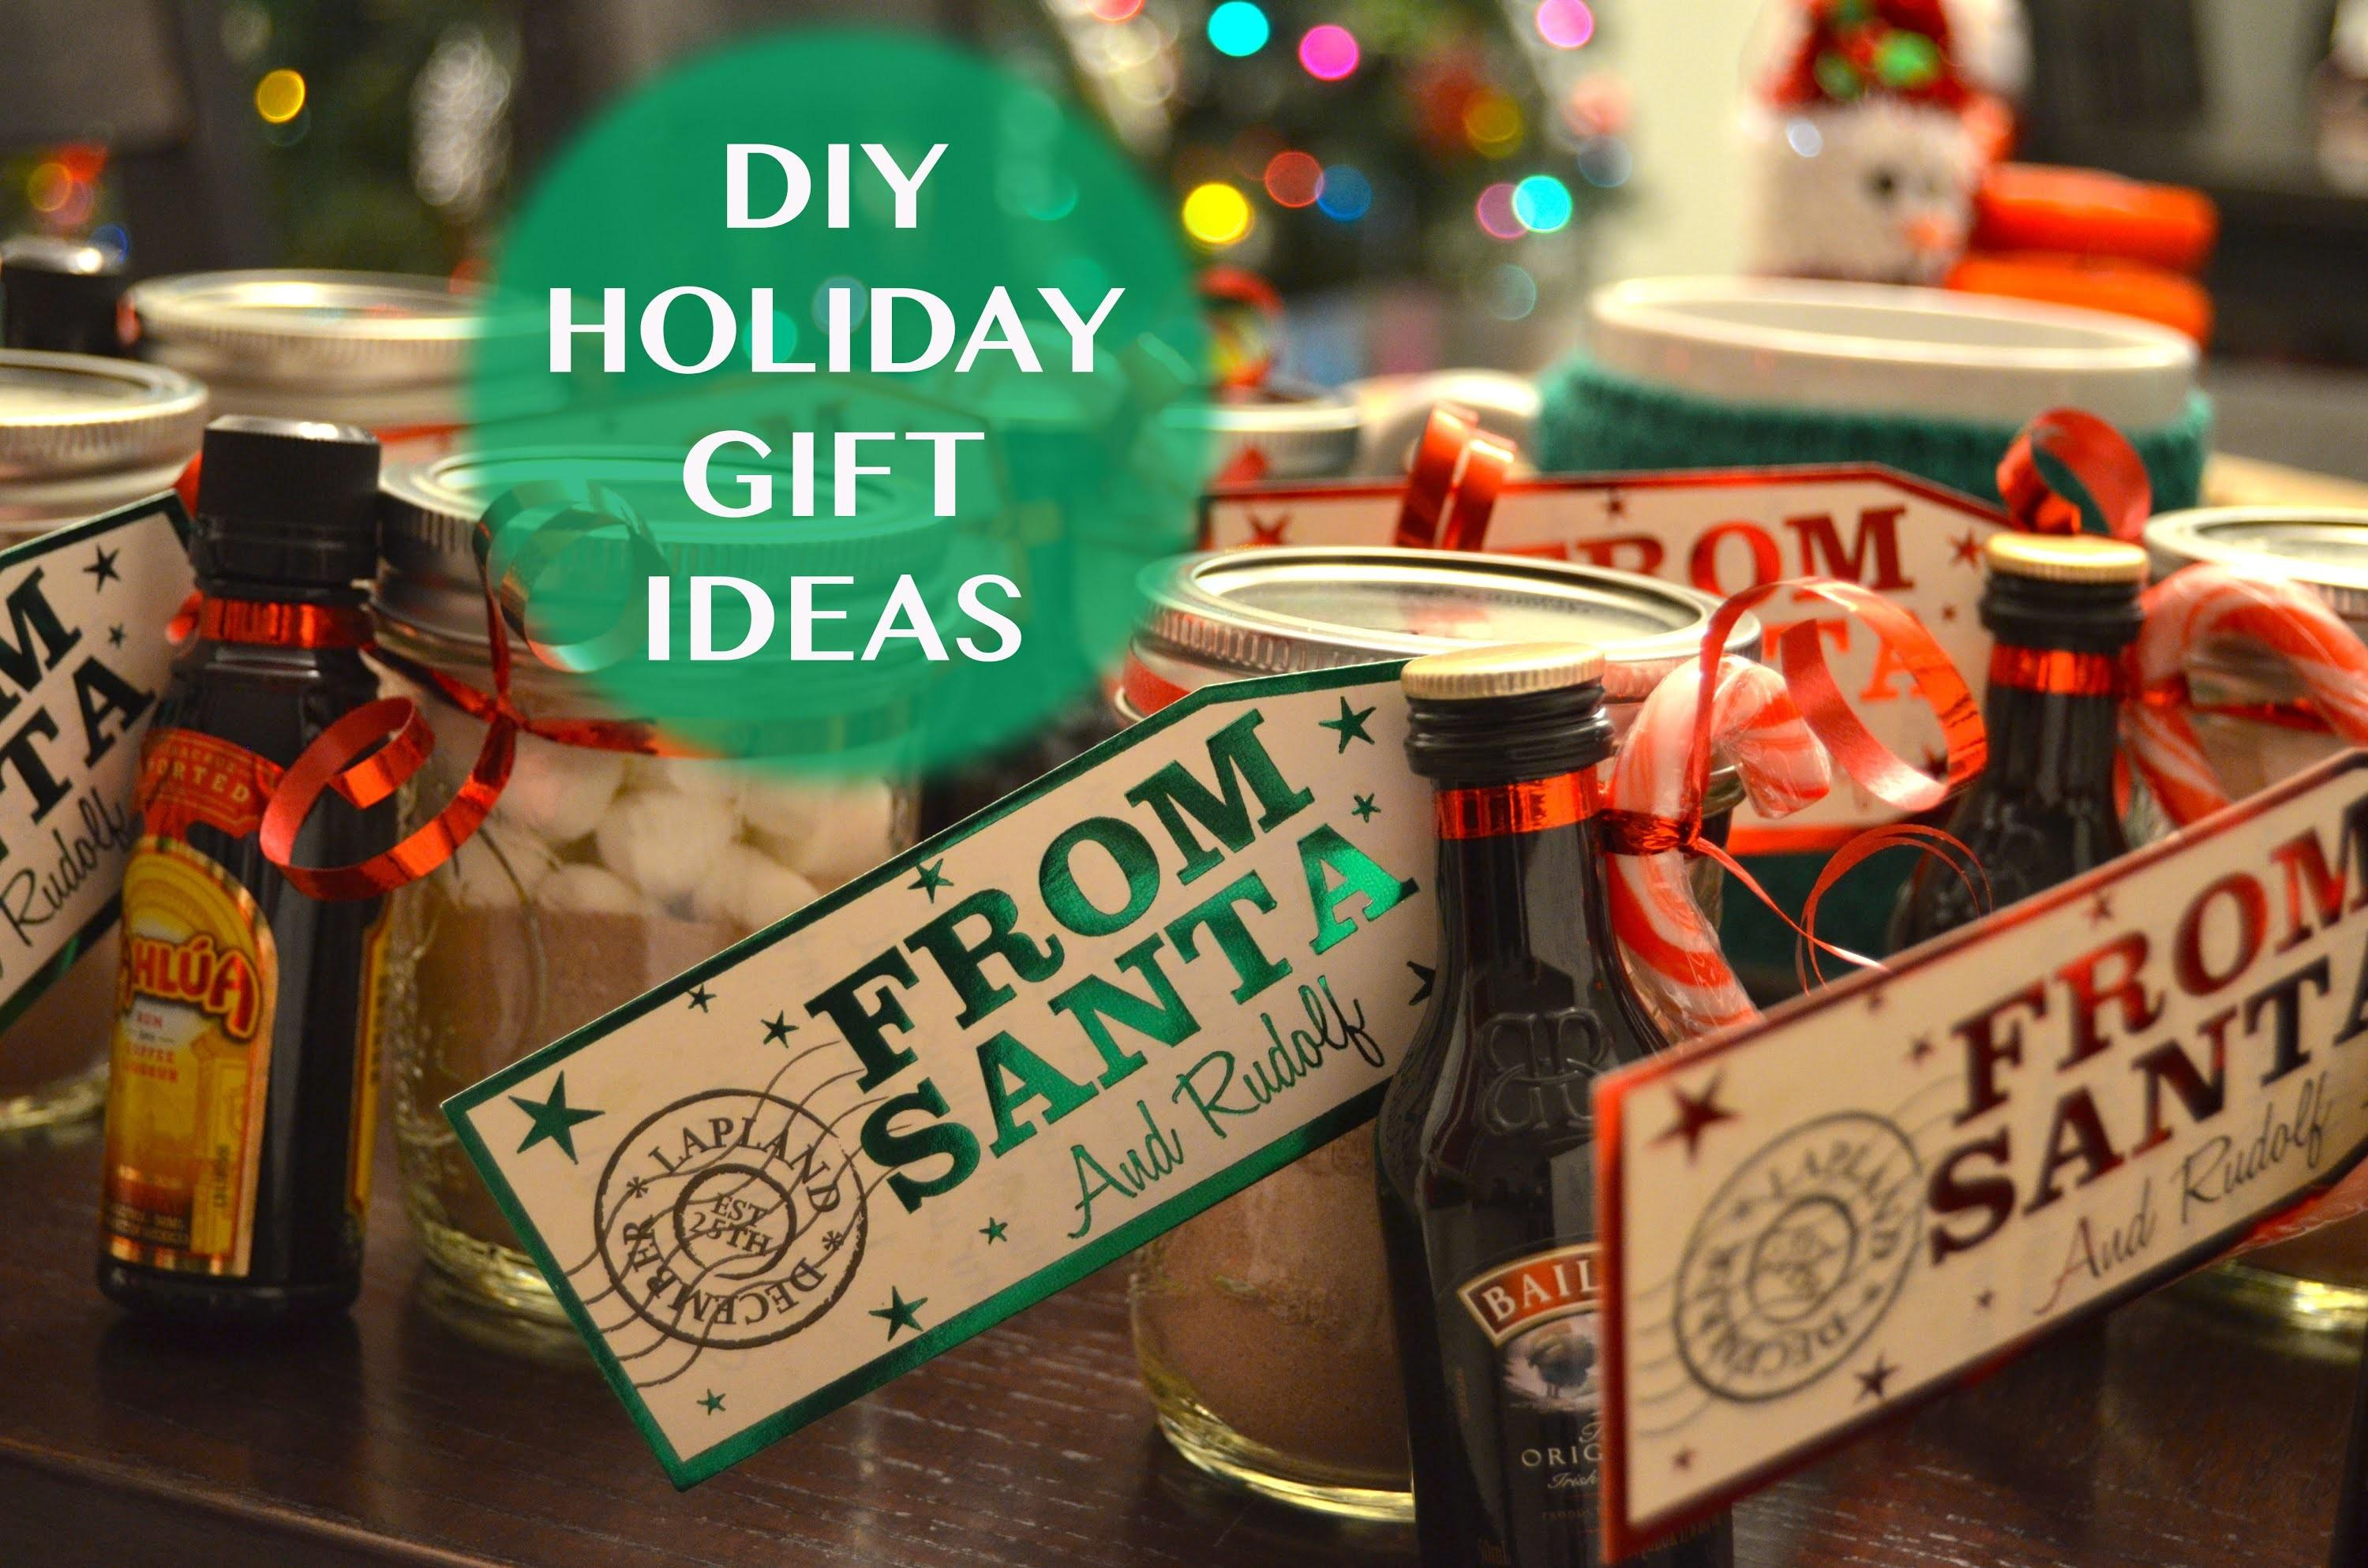 Diy Holiday Gift Ideas Mason Jar Hot Chocolate